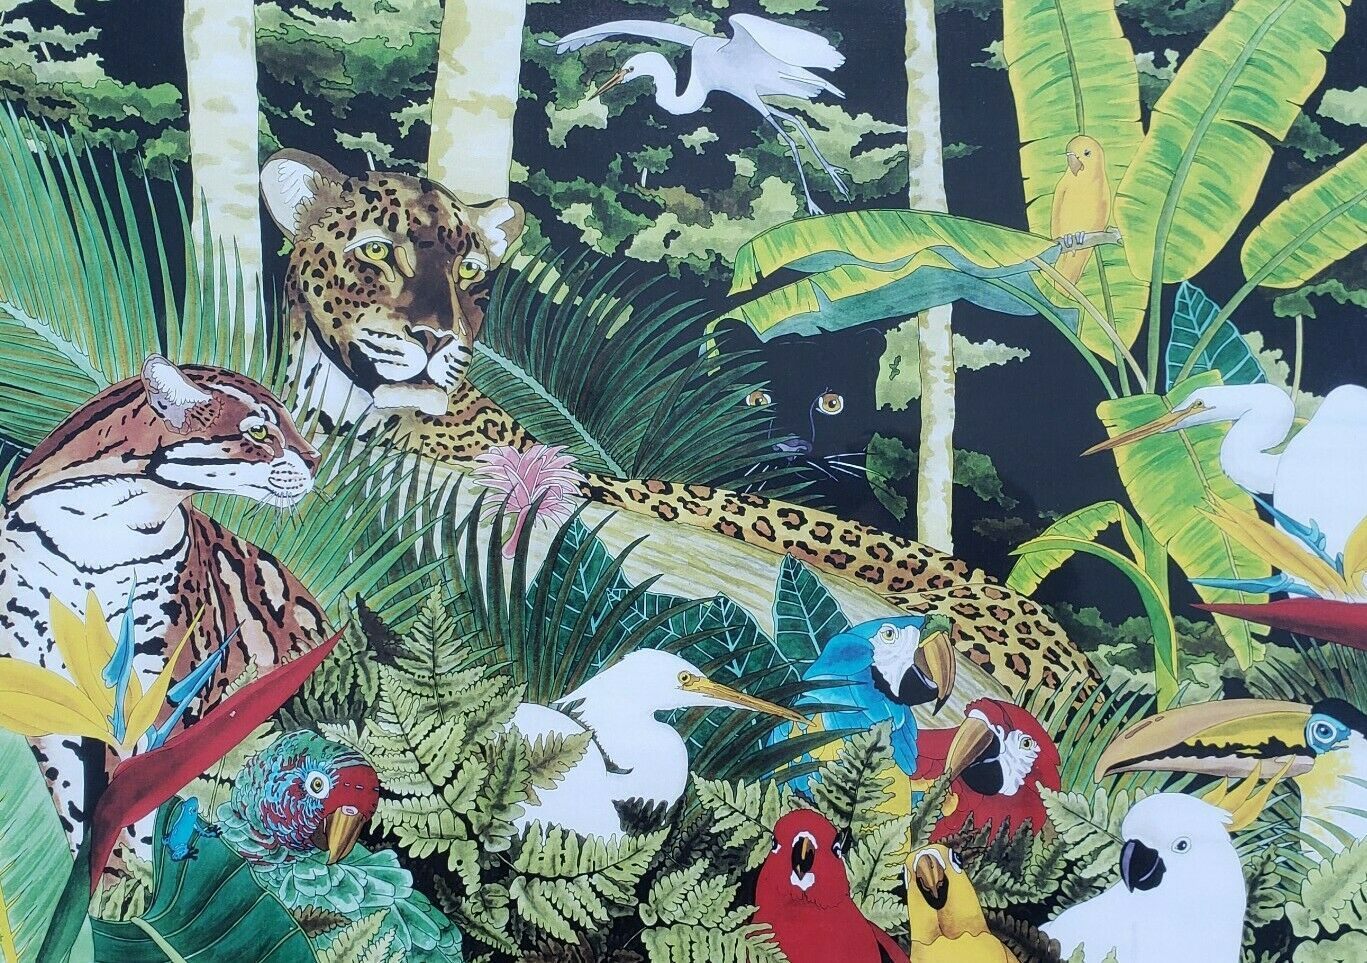 Primary image for Jorge Fernandini - Cheetah Jungle - Watercolor Art South Beach, Miami Florida